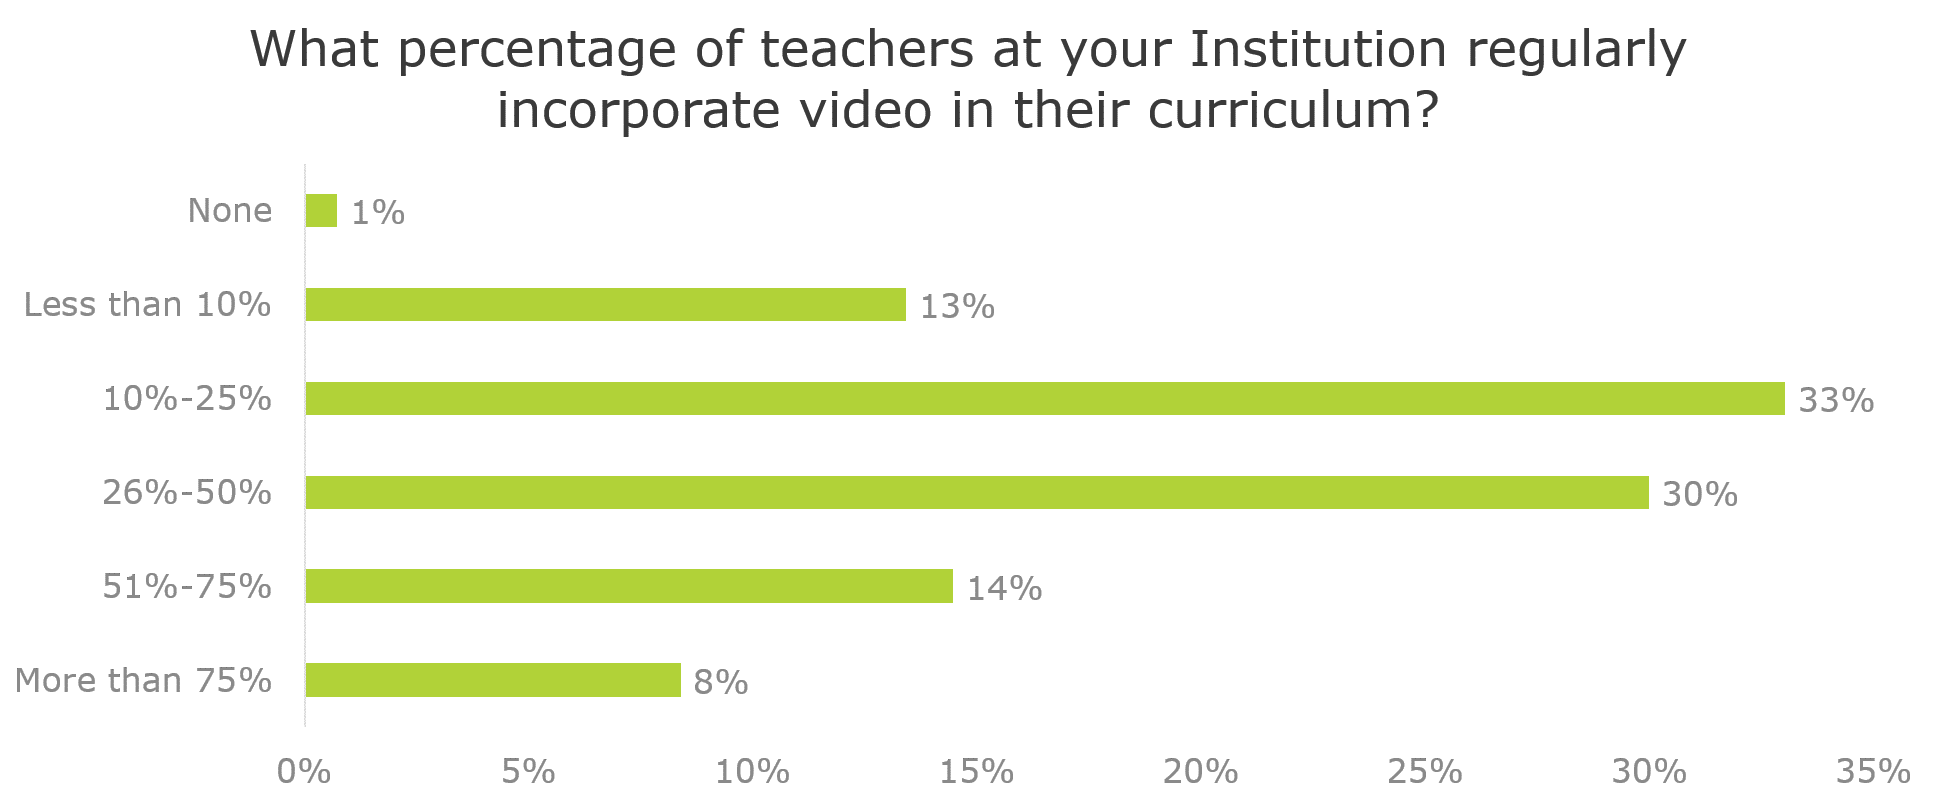 What percentage of teachers at your institution regular incorporate video in their curriculum